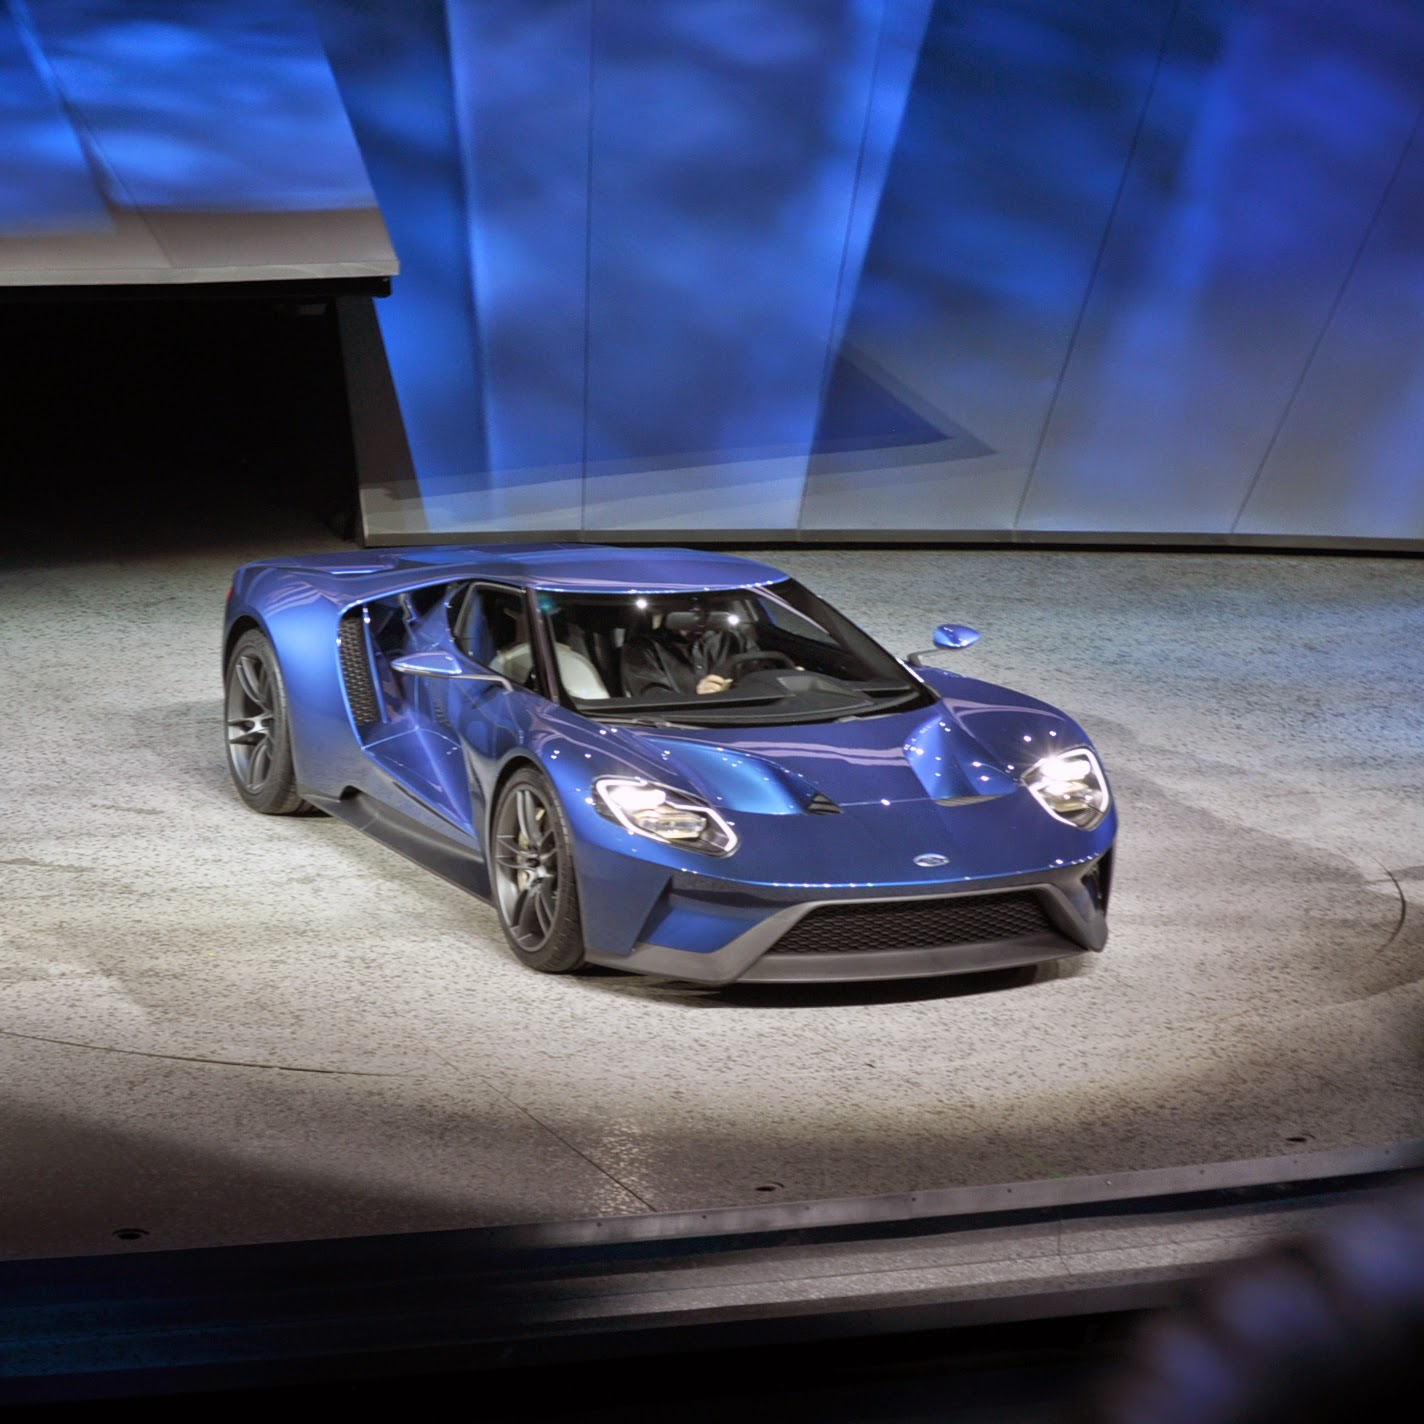 Best Supercars 2017: Industrial Design In Victoria Australia: Ford GT Supercar